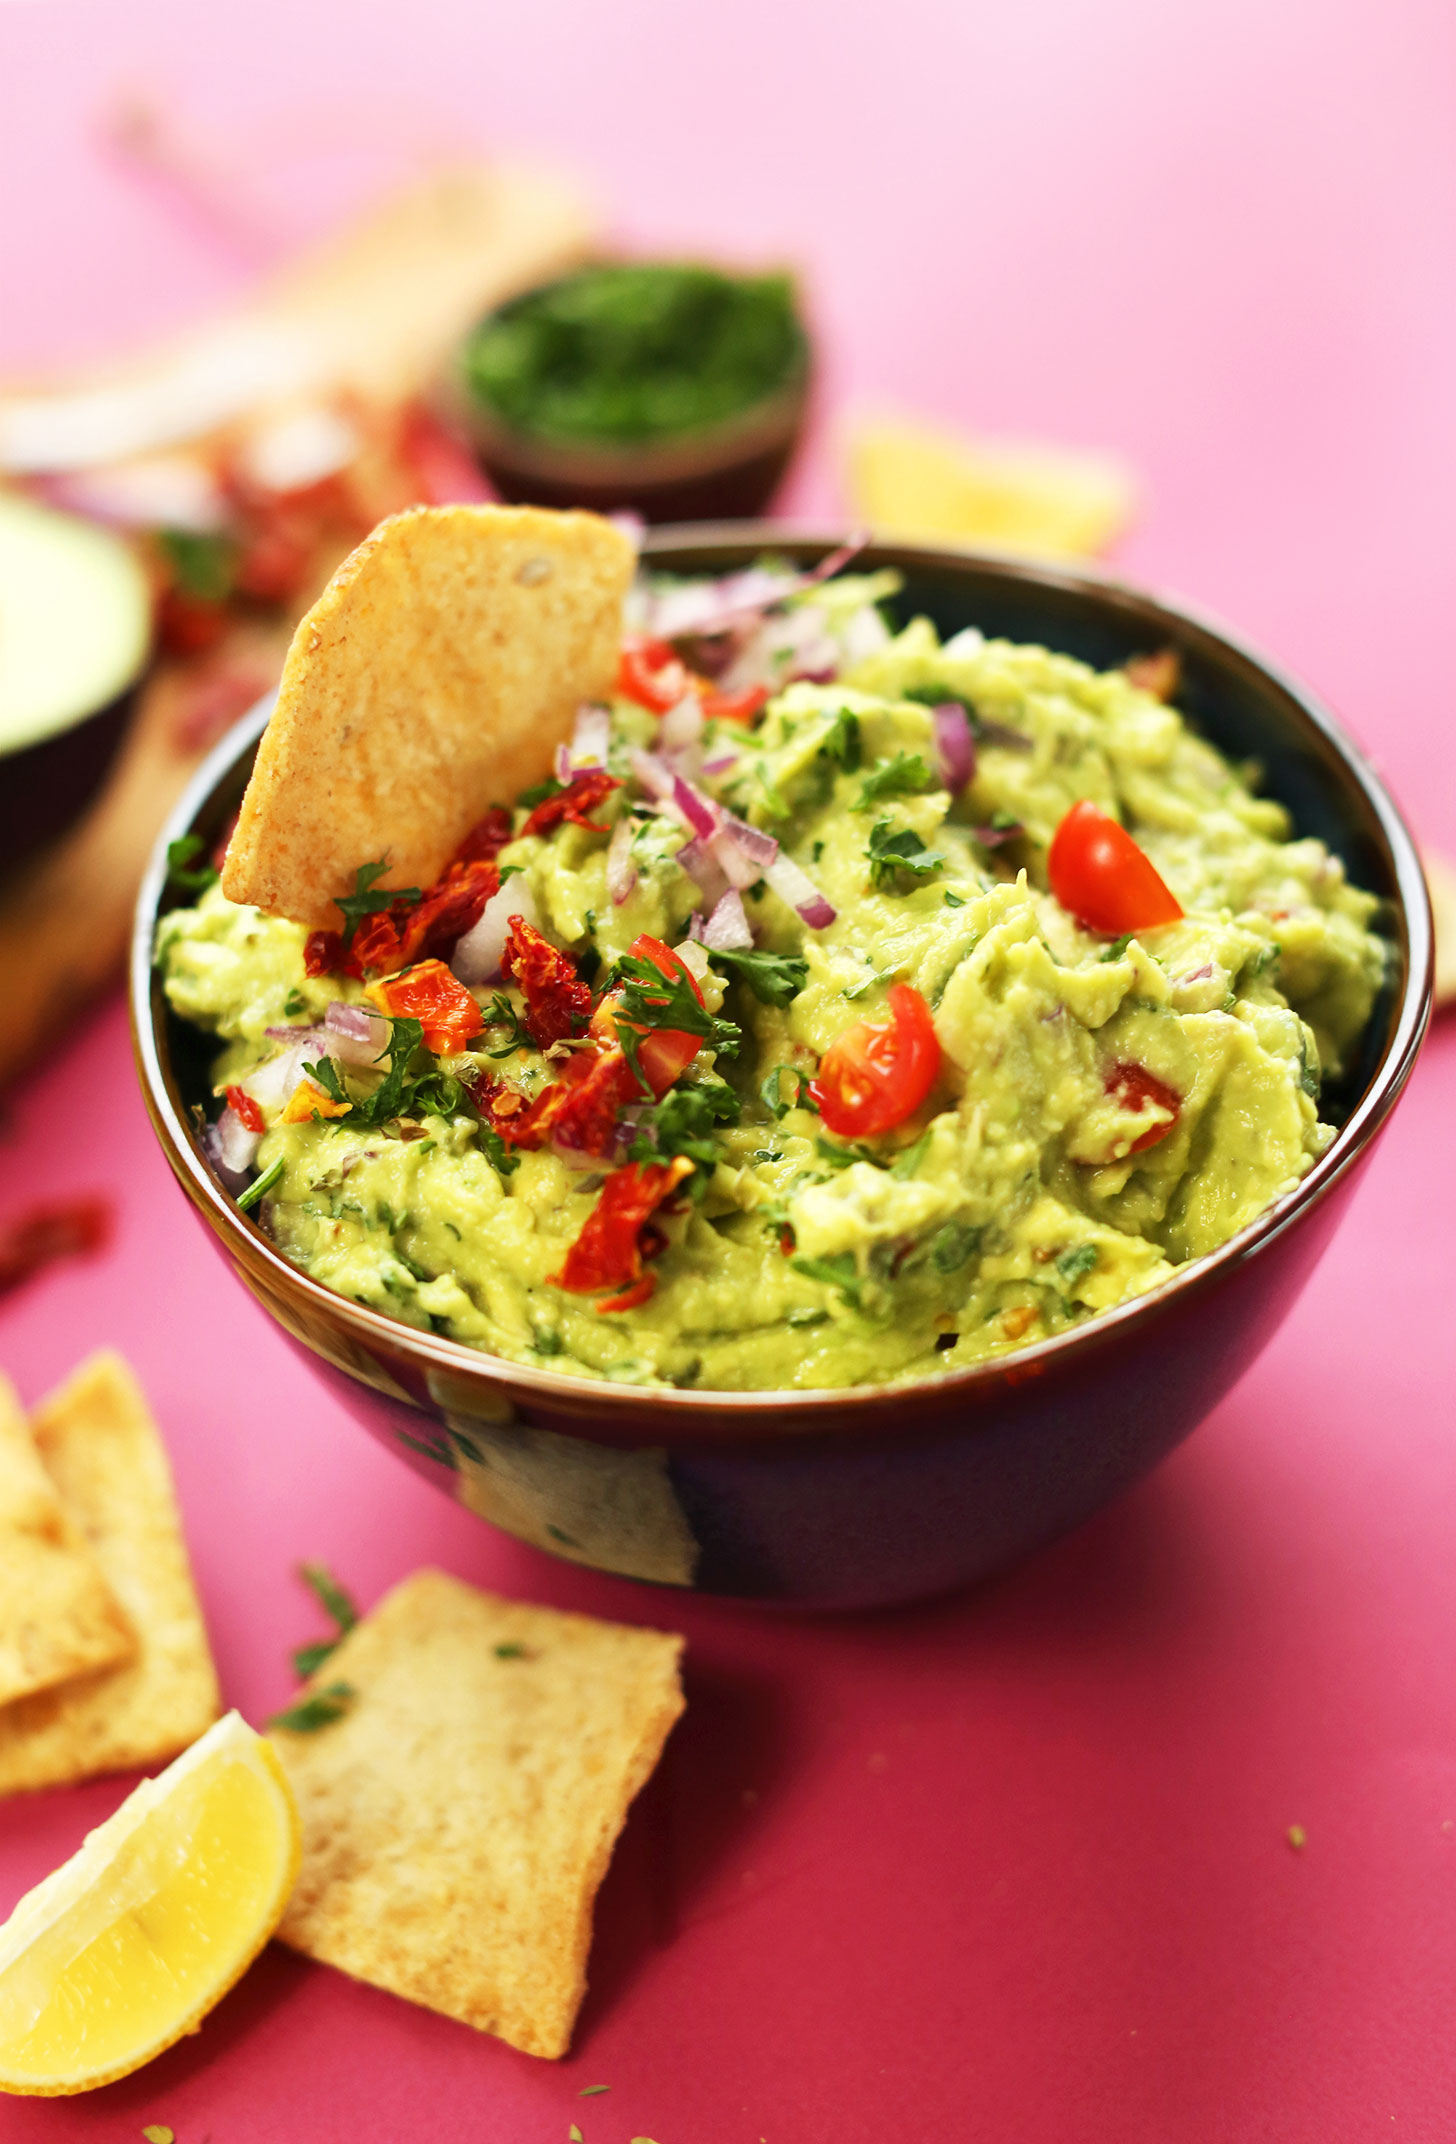 10-minute-CRAZY-delicious-Greek-inspired-GUACAMOLE-with-sun-dried-and-fresh-tomato-red-onion-lemon-juice-and-oregano-A-healthy-nutritious-snack-vegan-plantbased-glutenfree-guacamole-recipe